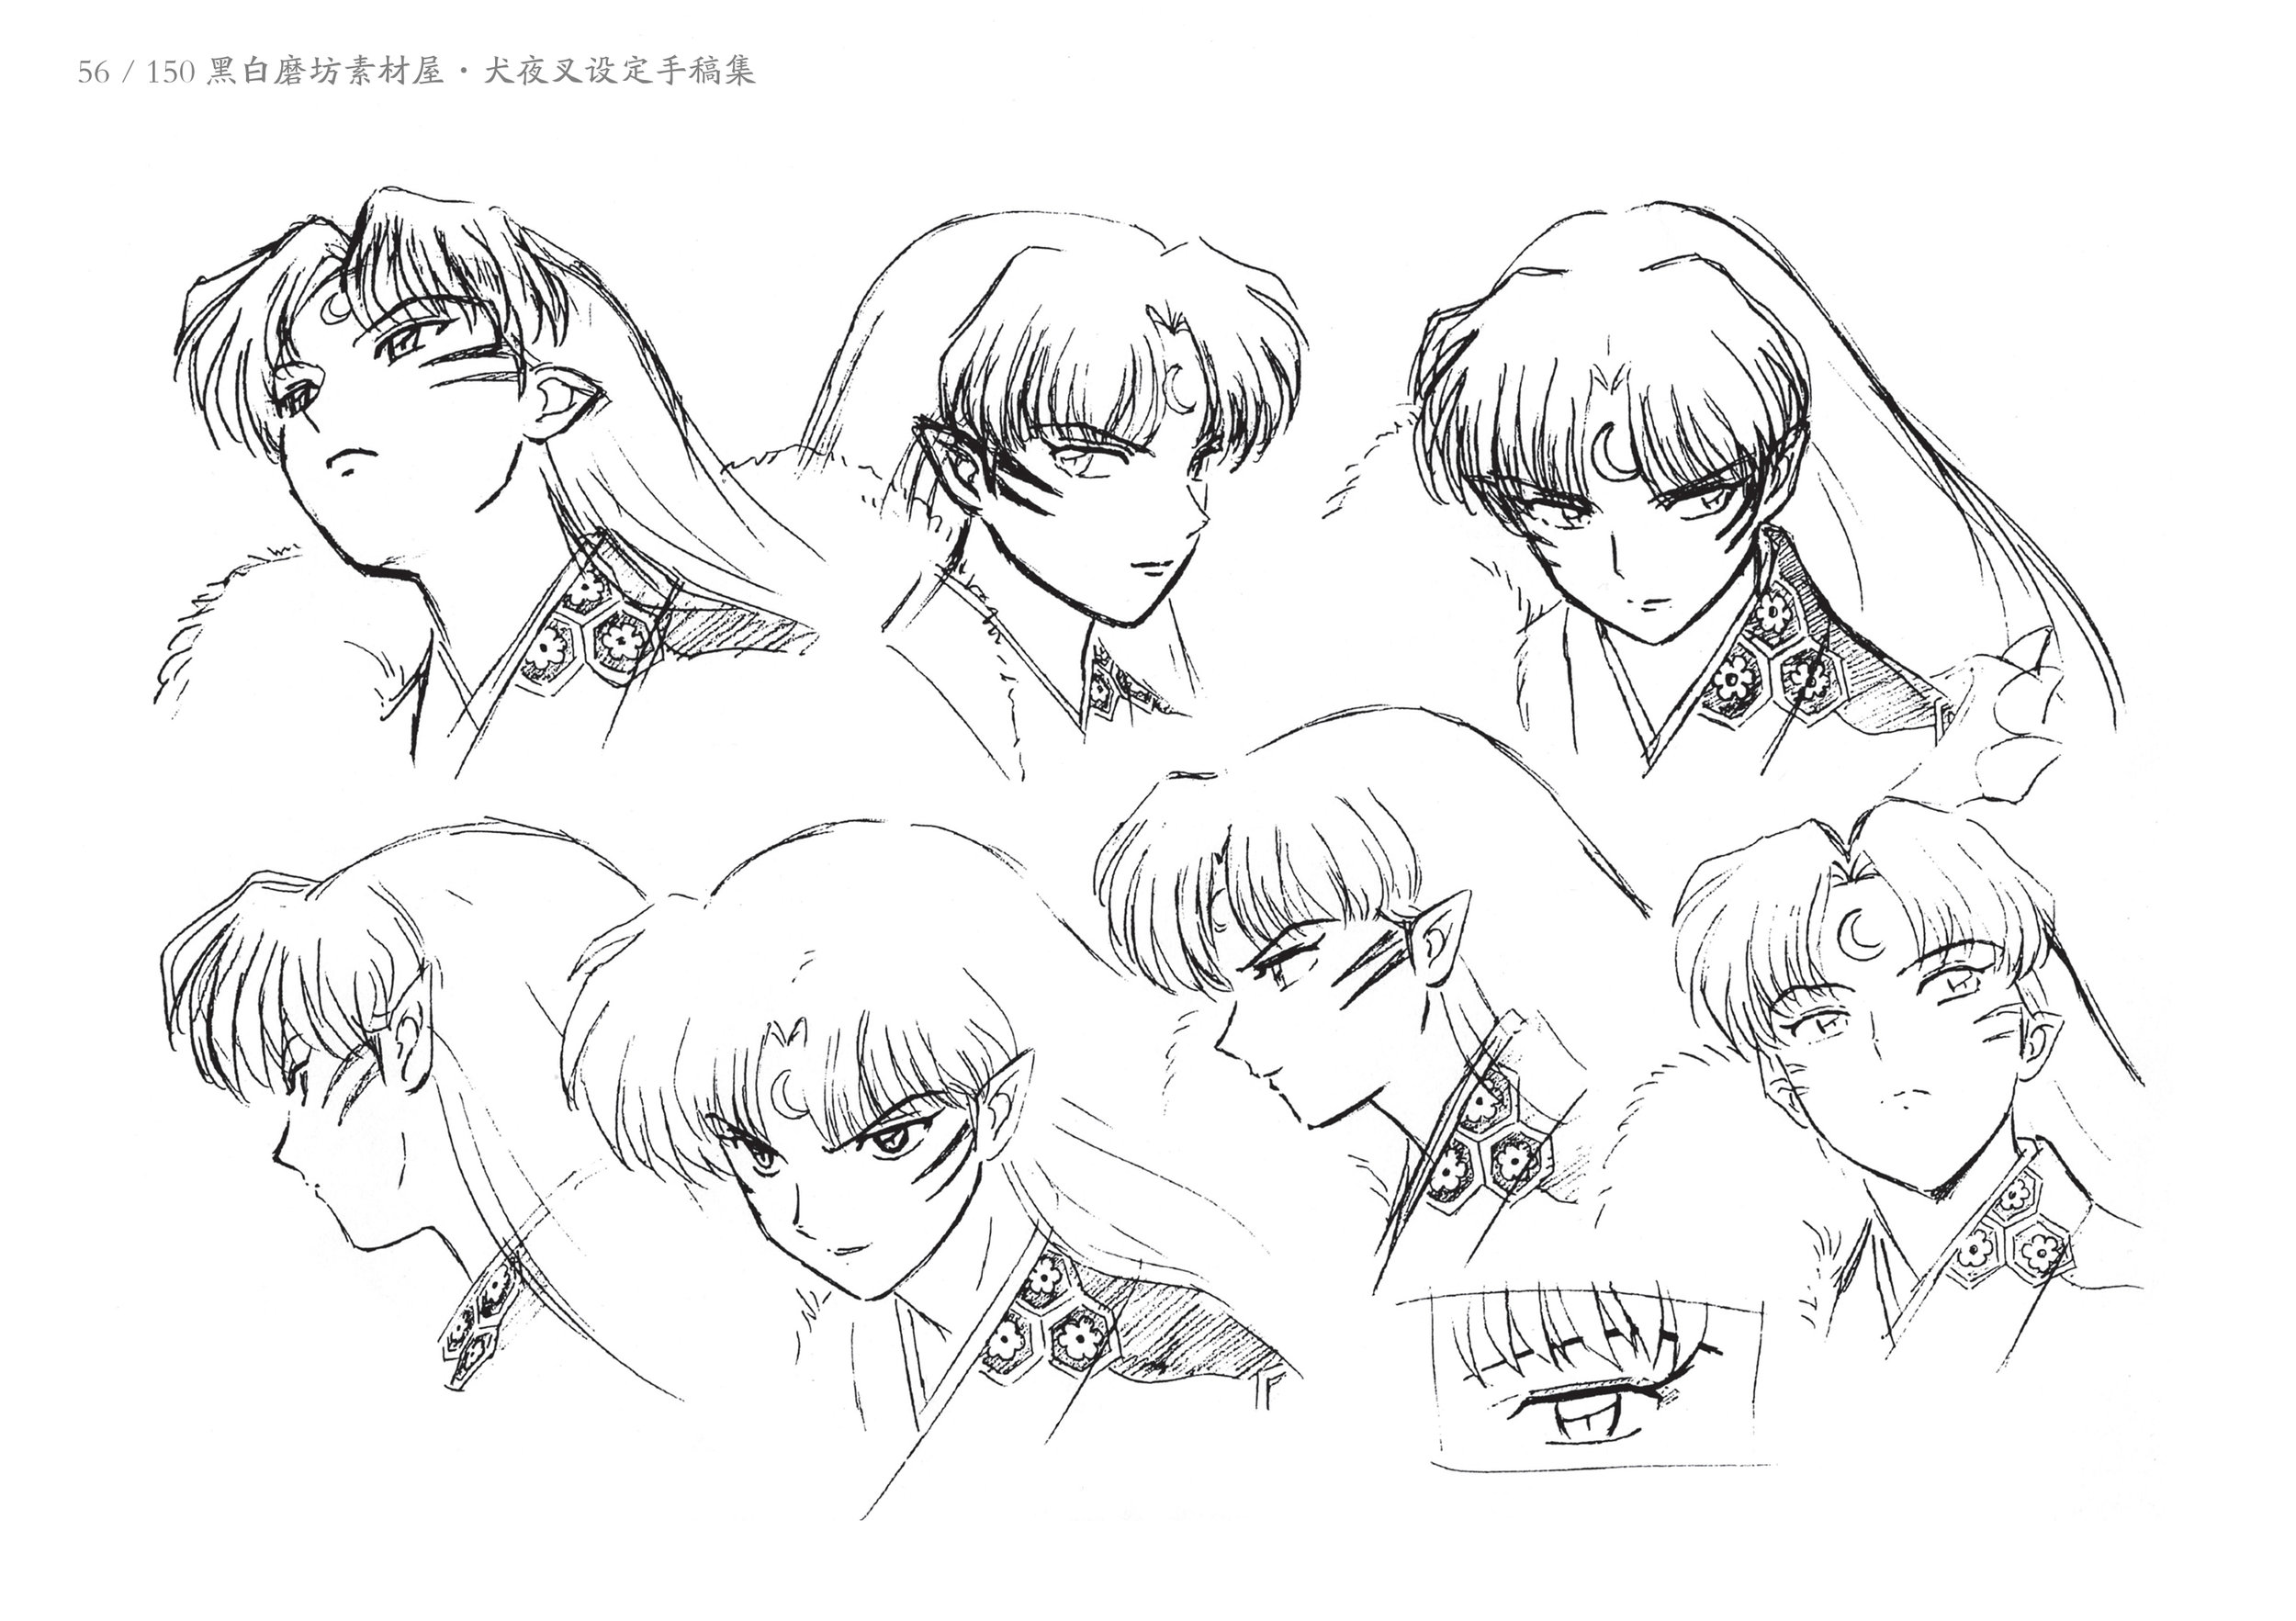 Art of the Inuyasha A - 50.jpg